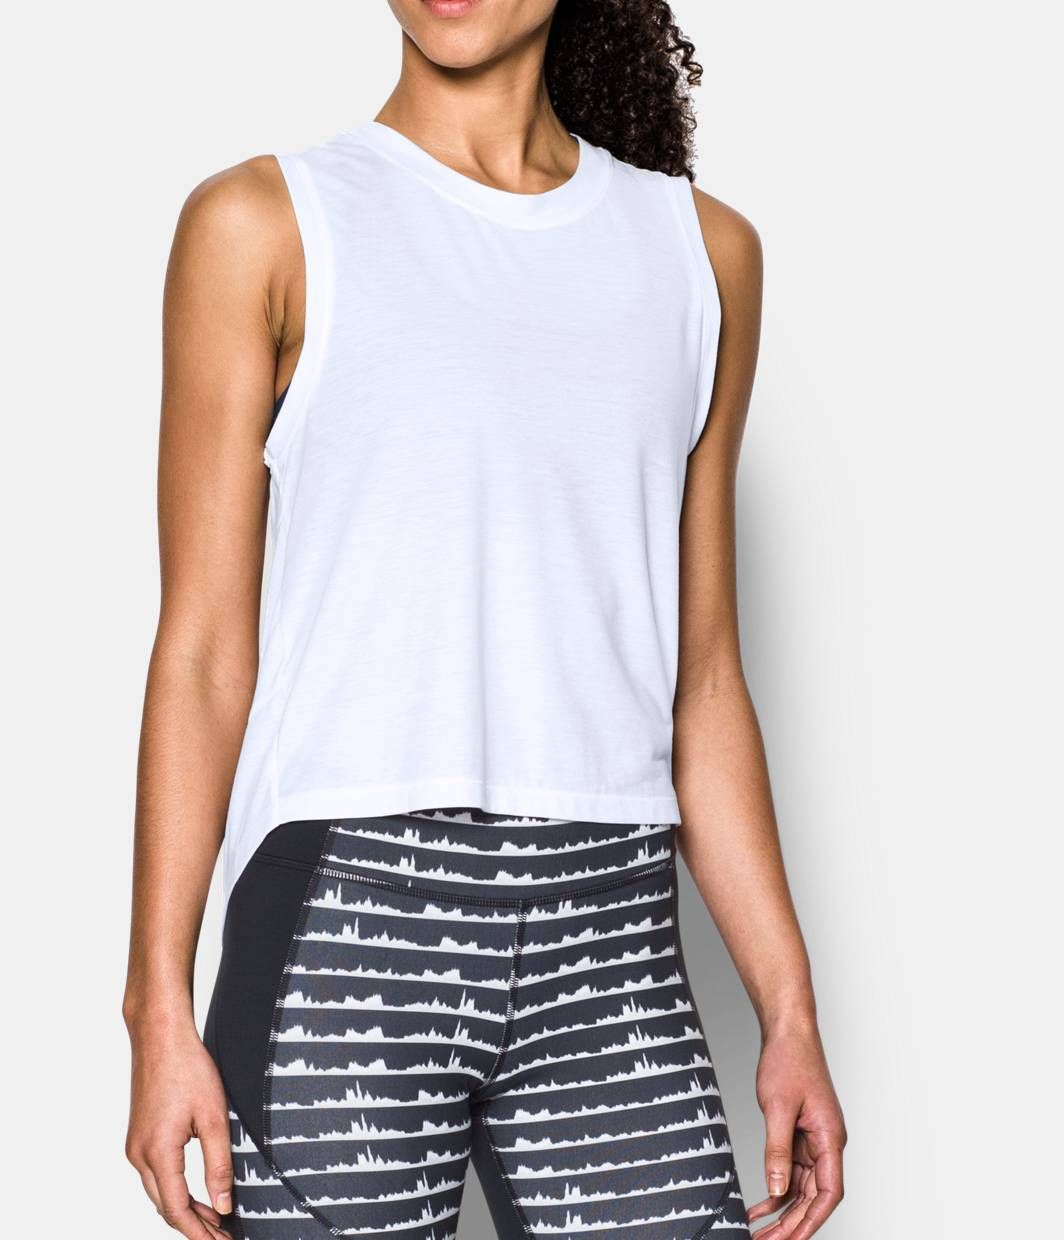 cc805196 Women's UA Supreme Muscle Tank | Gym clothes | Pinterest | Muscle ...